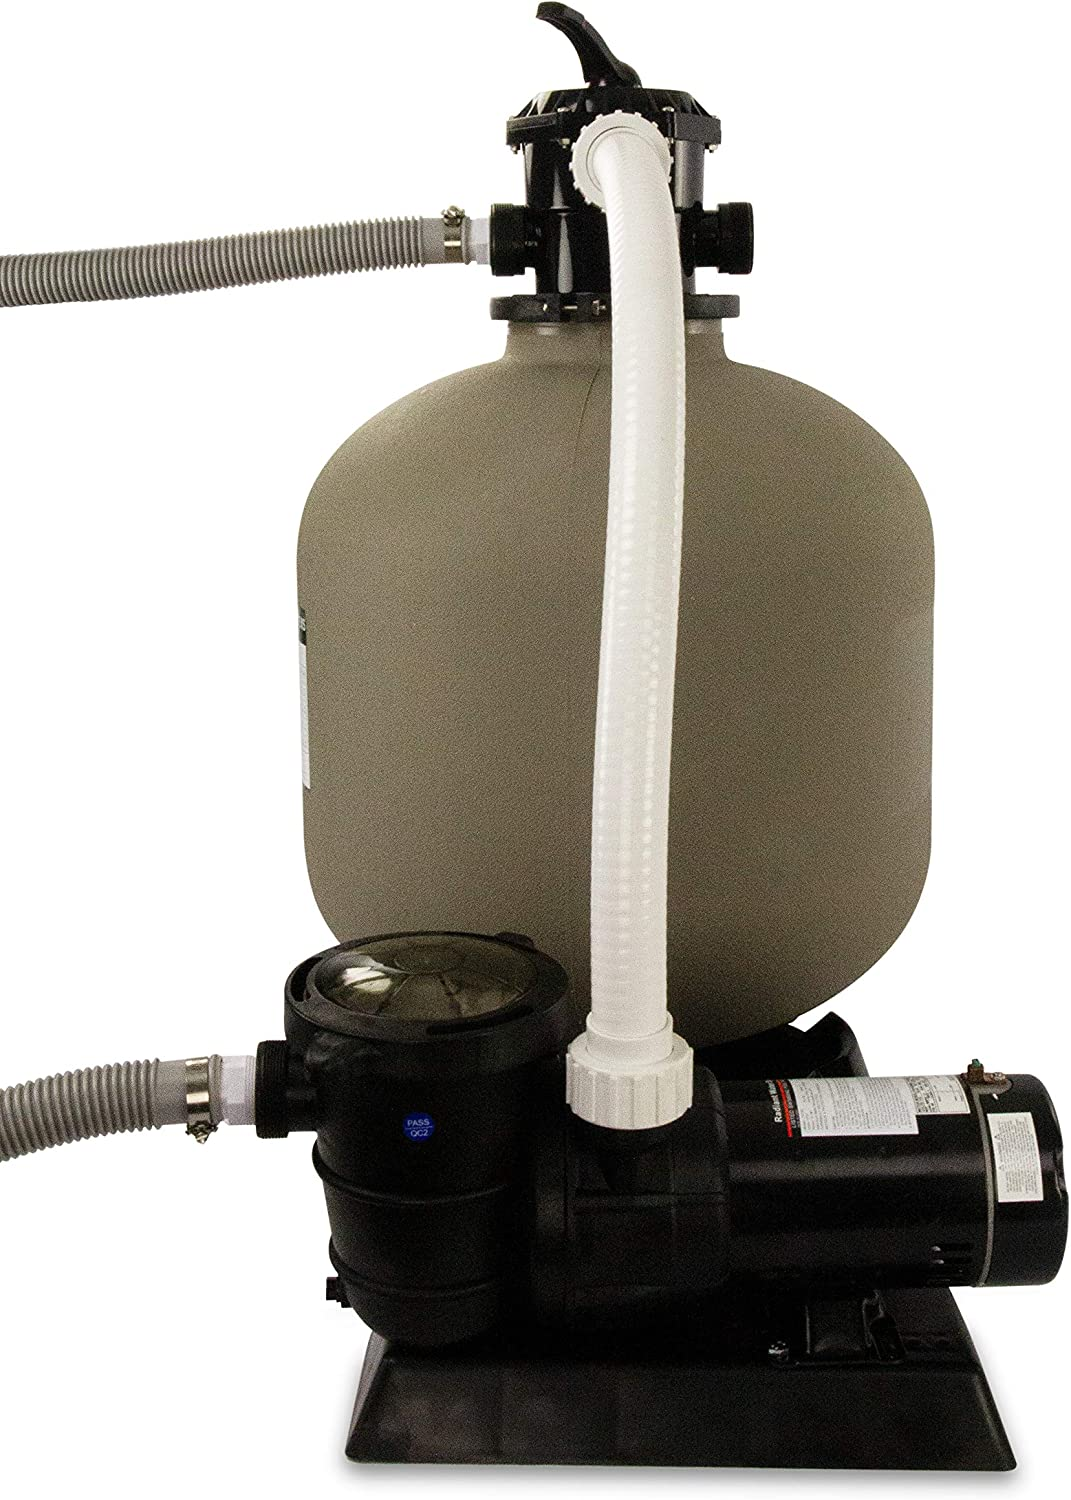 for Above Ground Swimming Pool 22 Inch Tank 220 Lb Sand Capacity Extreme Niagara 1.5 HP Pump Up to 26,000 Gallons Rx Clear Radiant Complete Sand Filter System